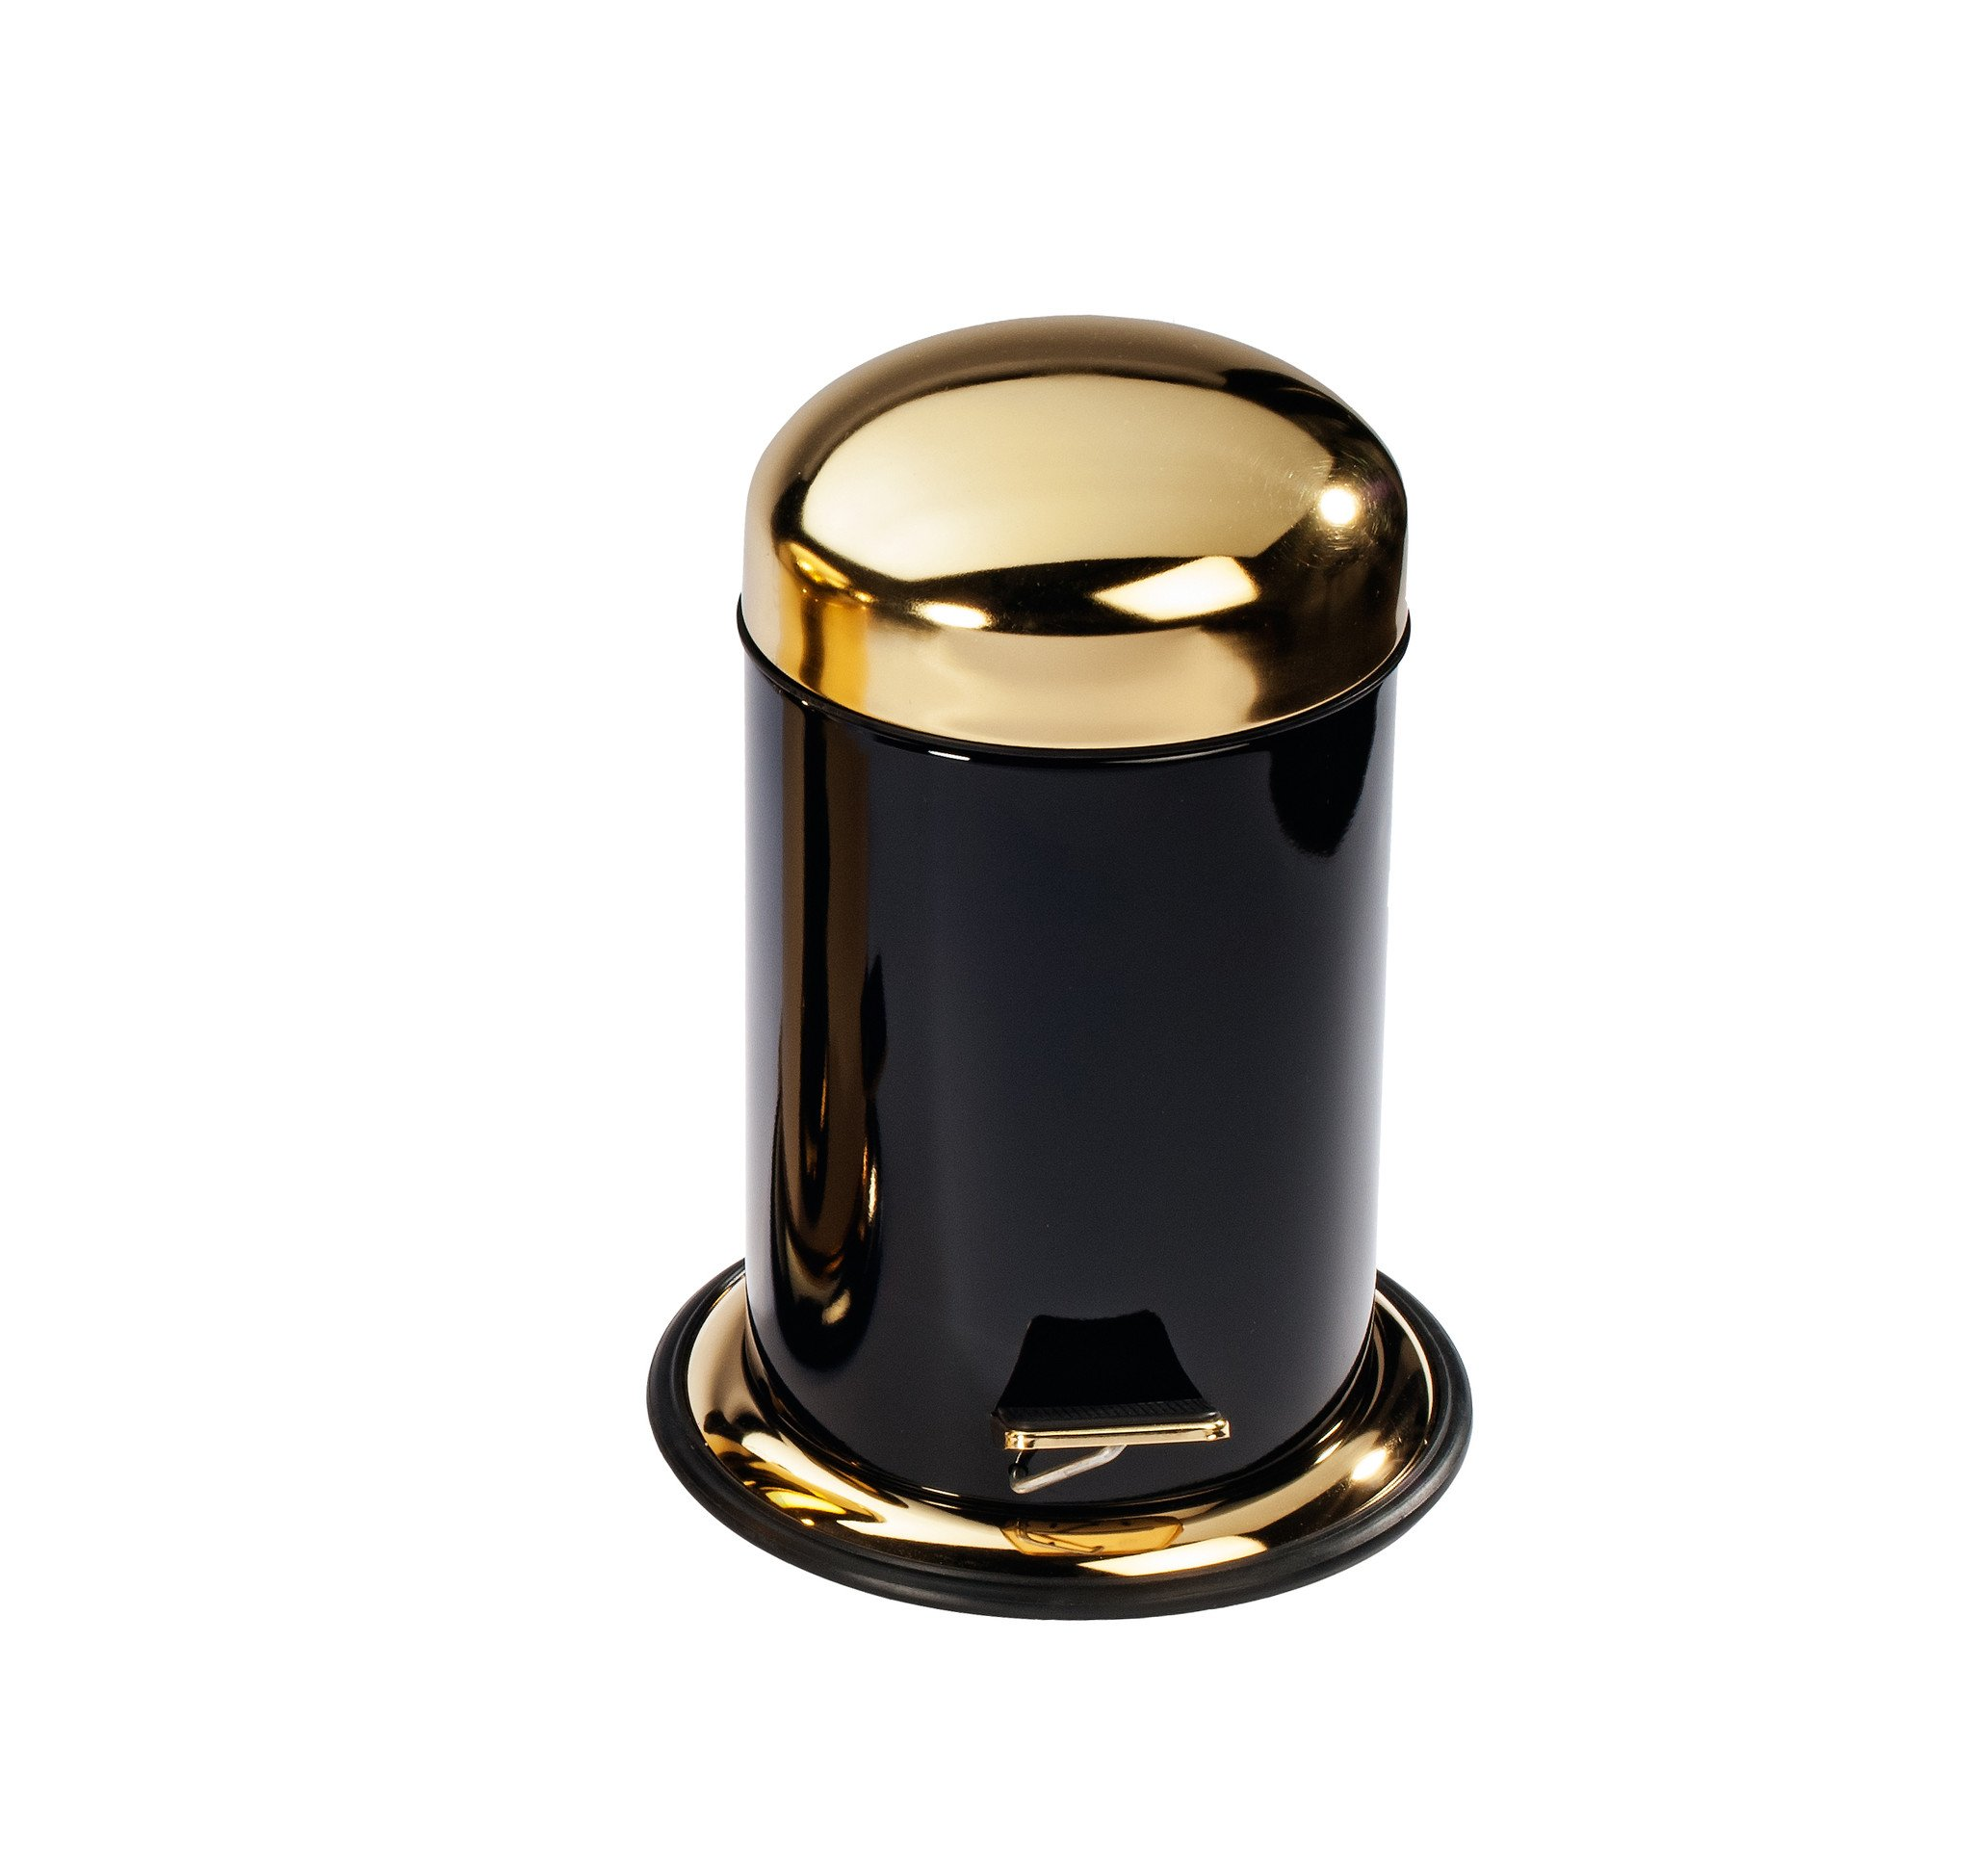 DWBA Round Step Trash Can, Stainless Steel Wastebasket W/ Lid Cover (Black-Gold)